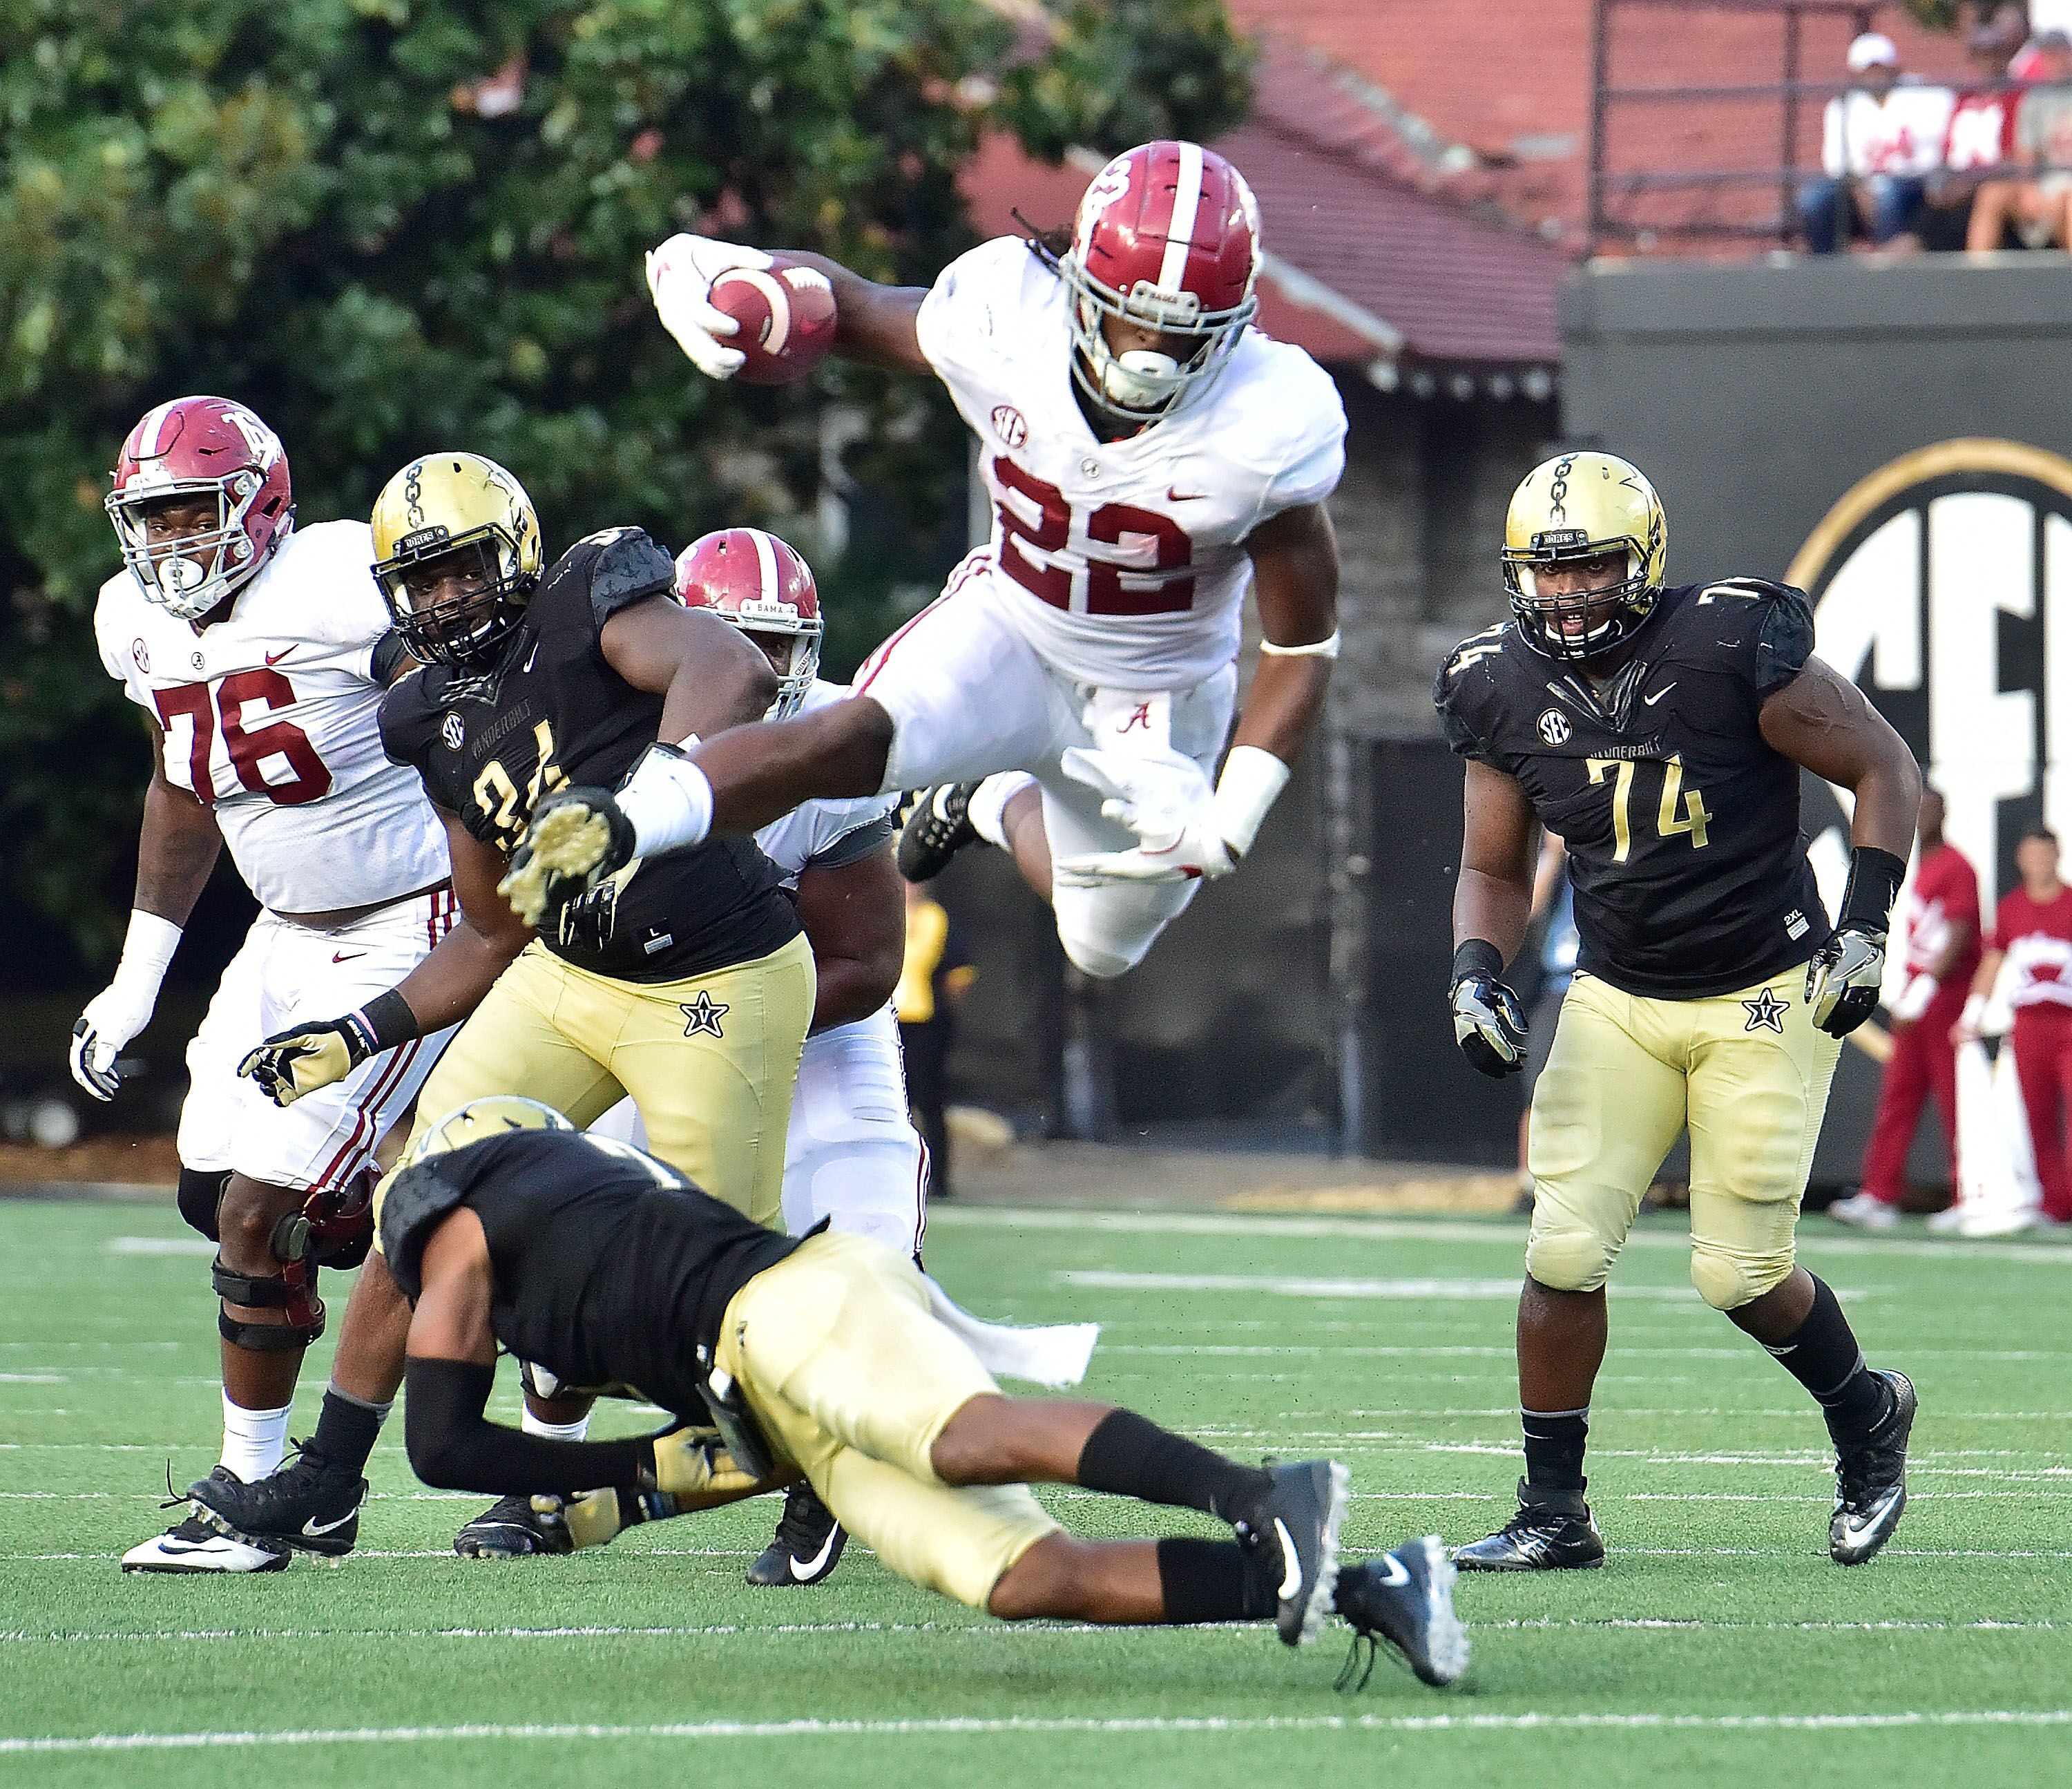 as it turns out vanderbilt did not want alabama